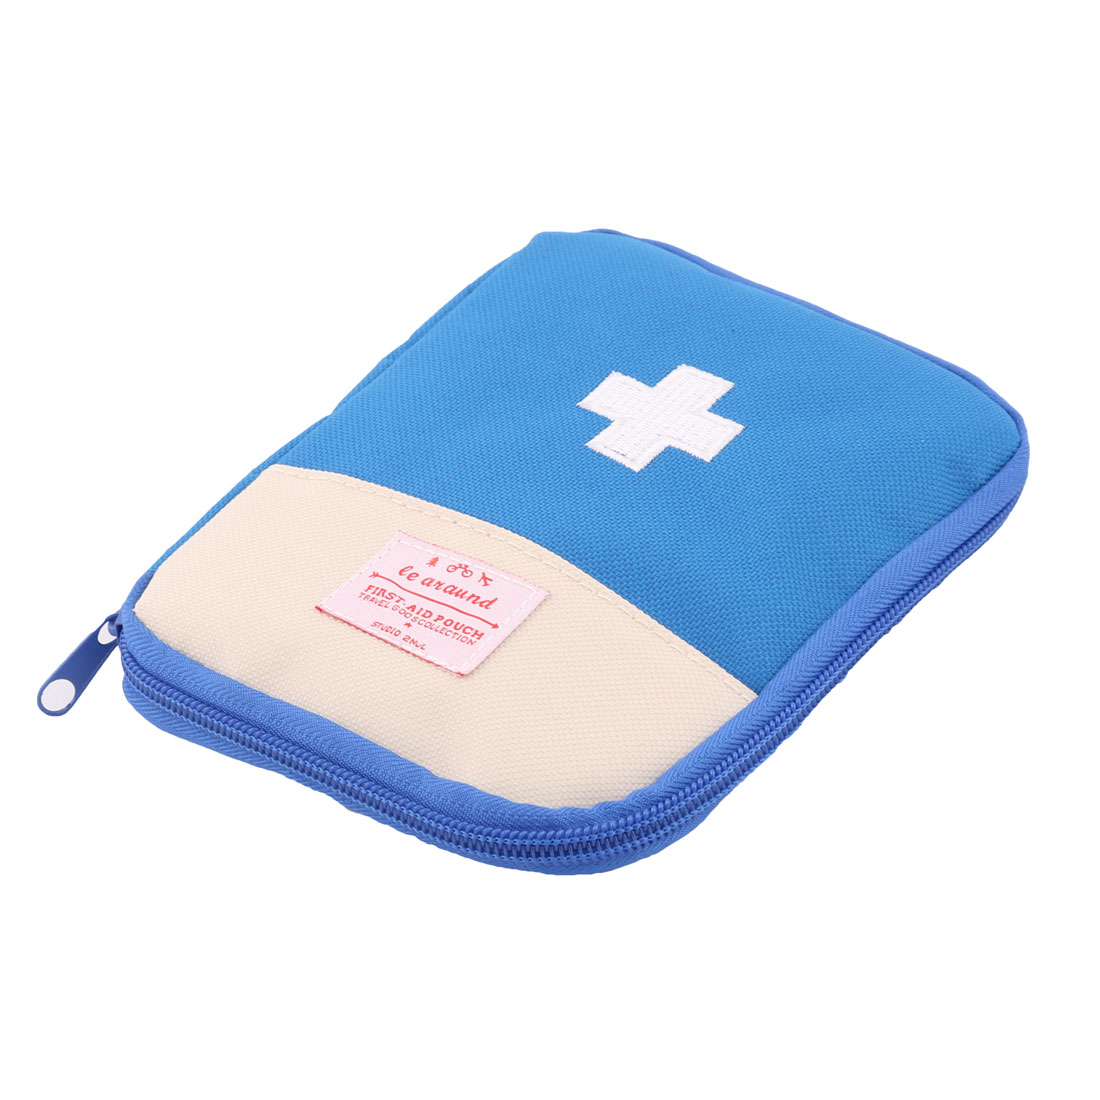 Outdoor Camping Portable Rectangle Shape First Aid Kit Medic Rescue Bag Blue